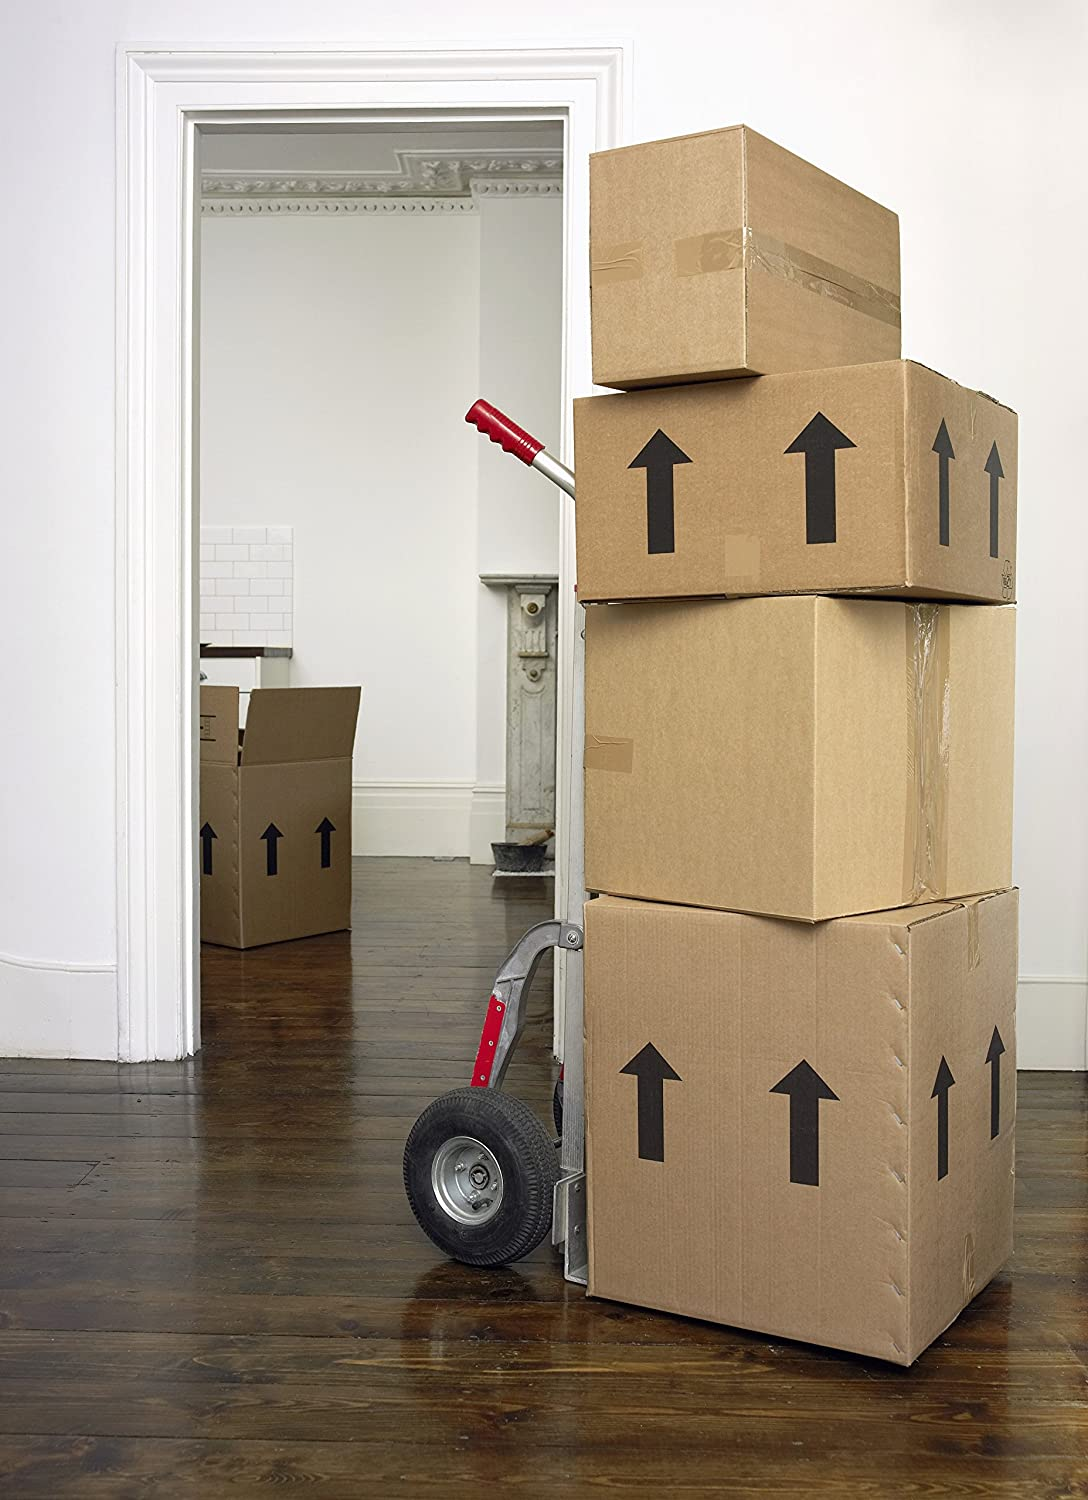 for Packing Pack of 20 Shipping Medium Moving Boxes Moving and Storage